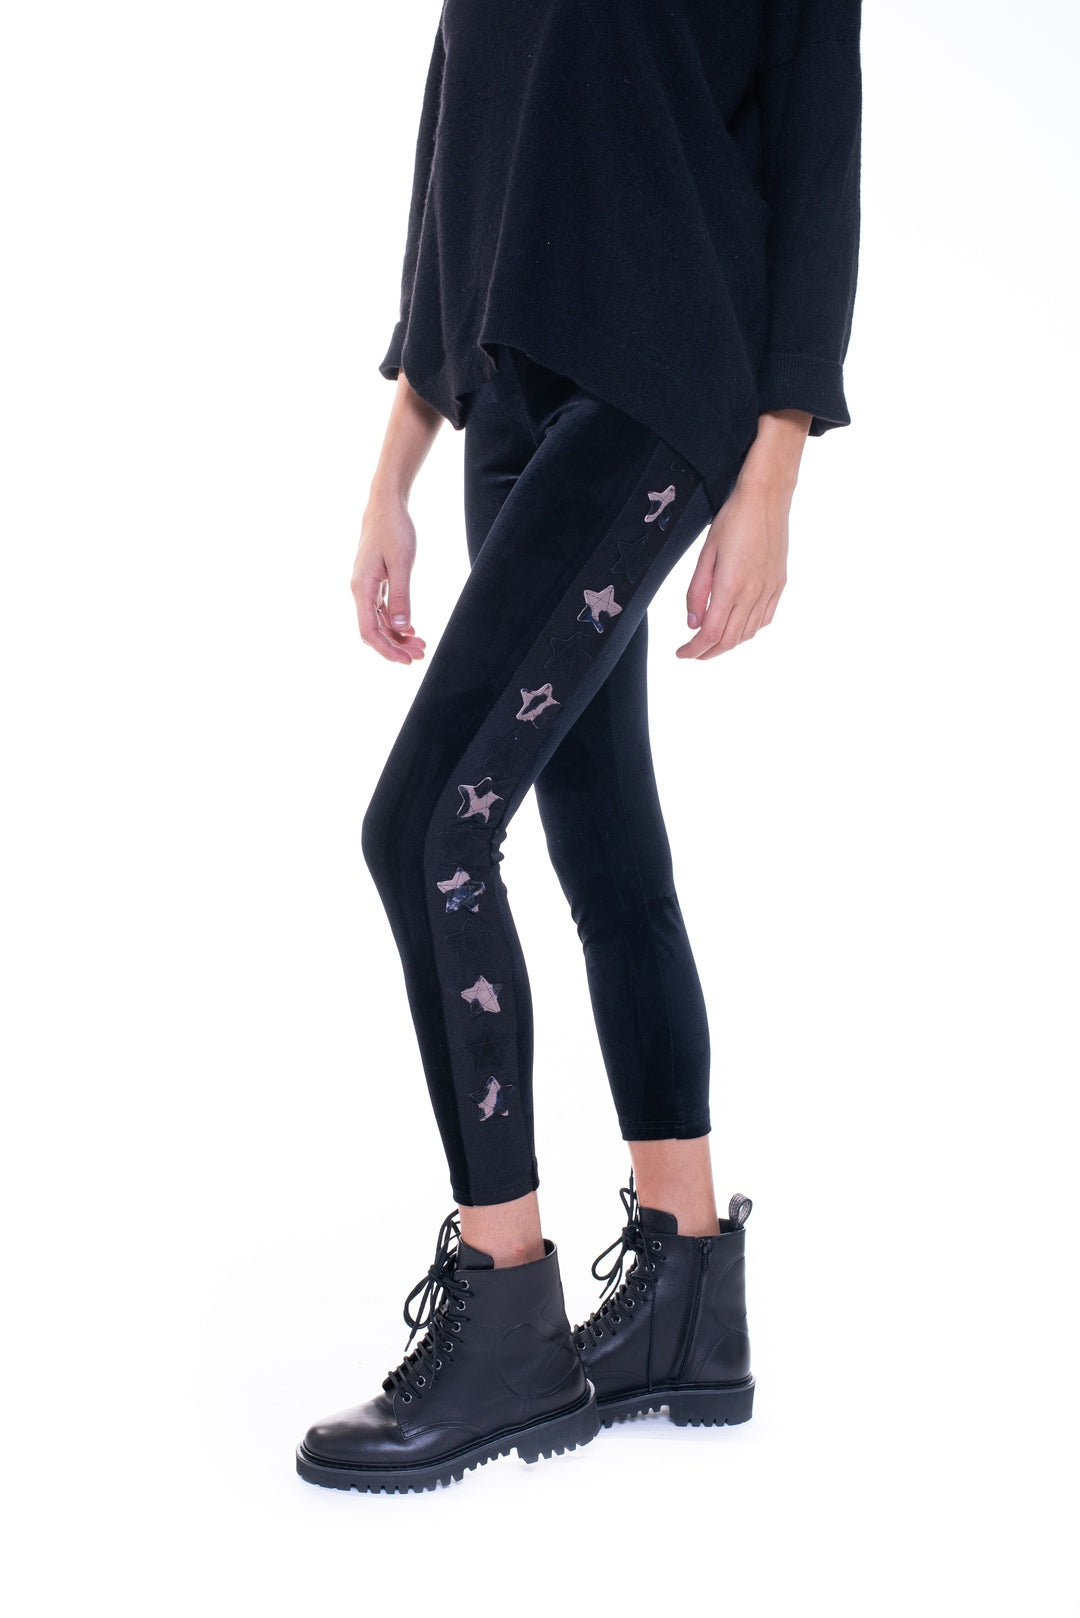 Leggings in velluto nero con stelle applicate su una gamba in cavallino camouflage